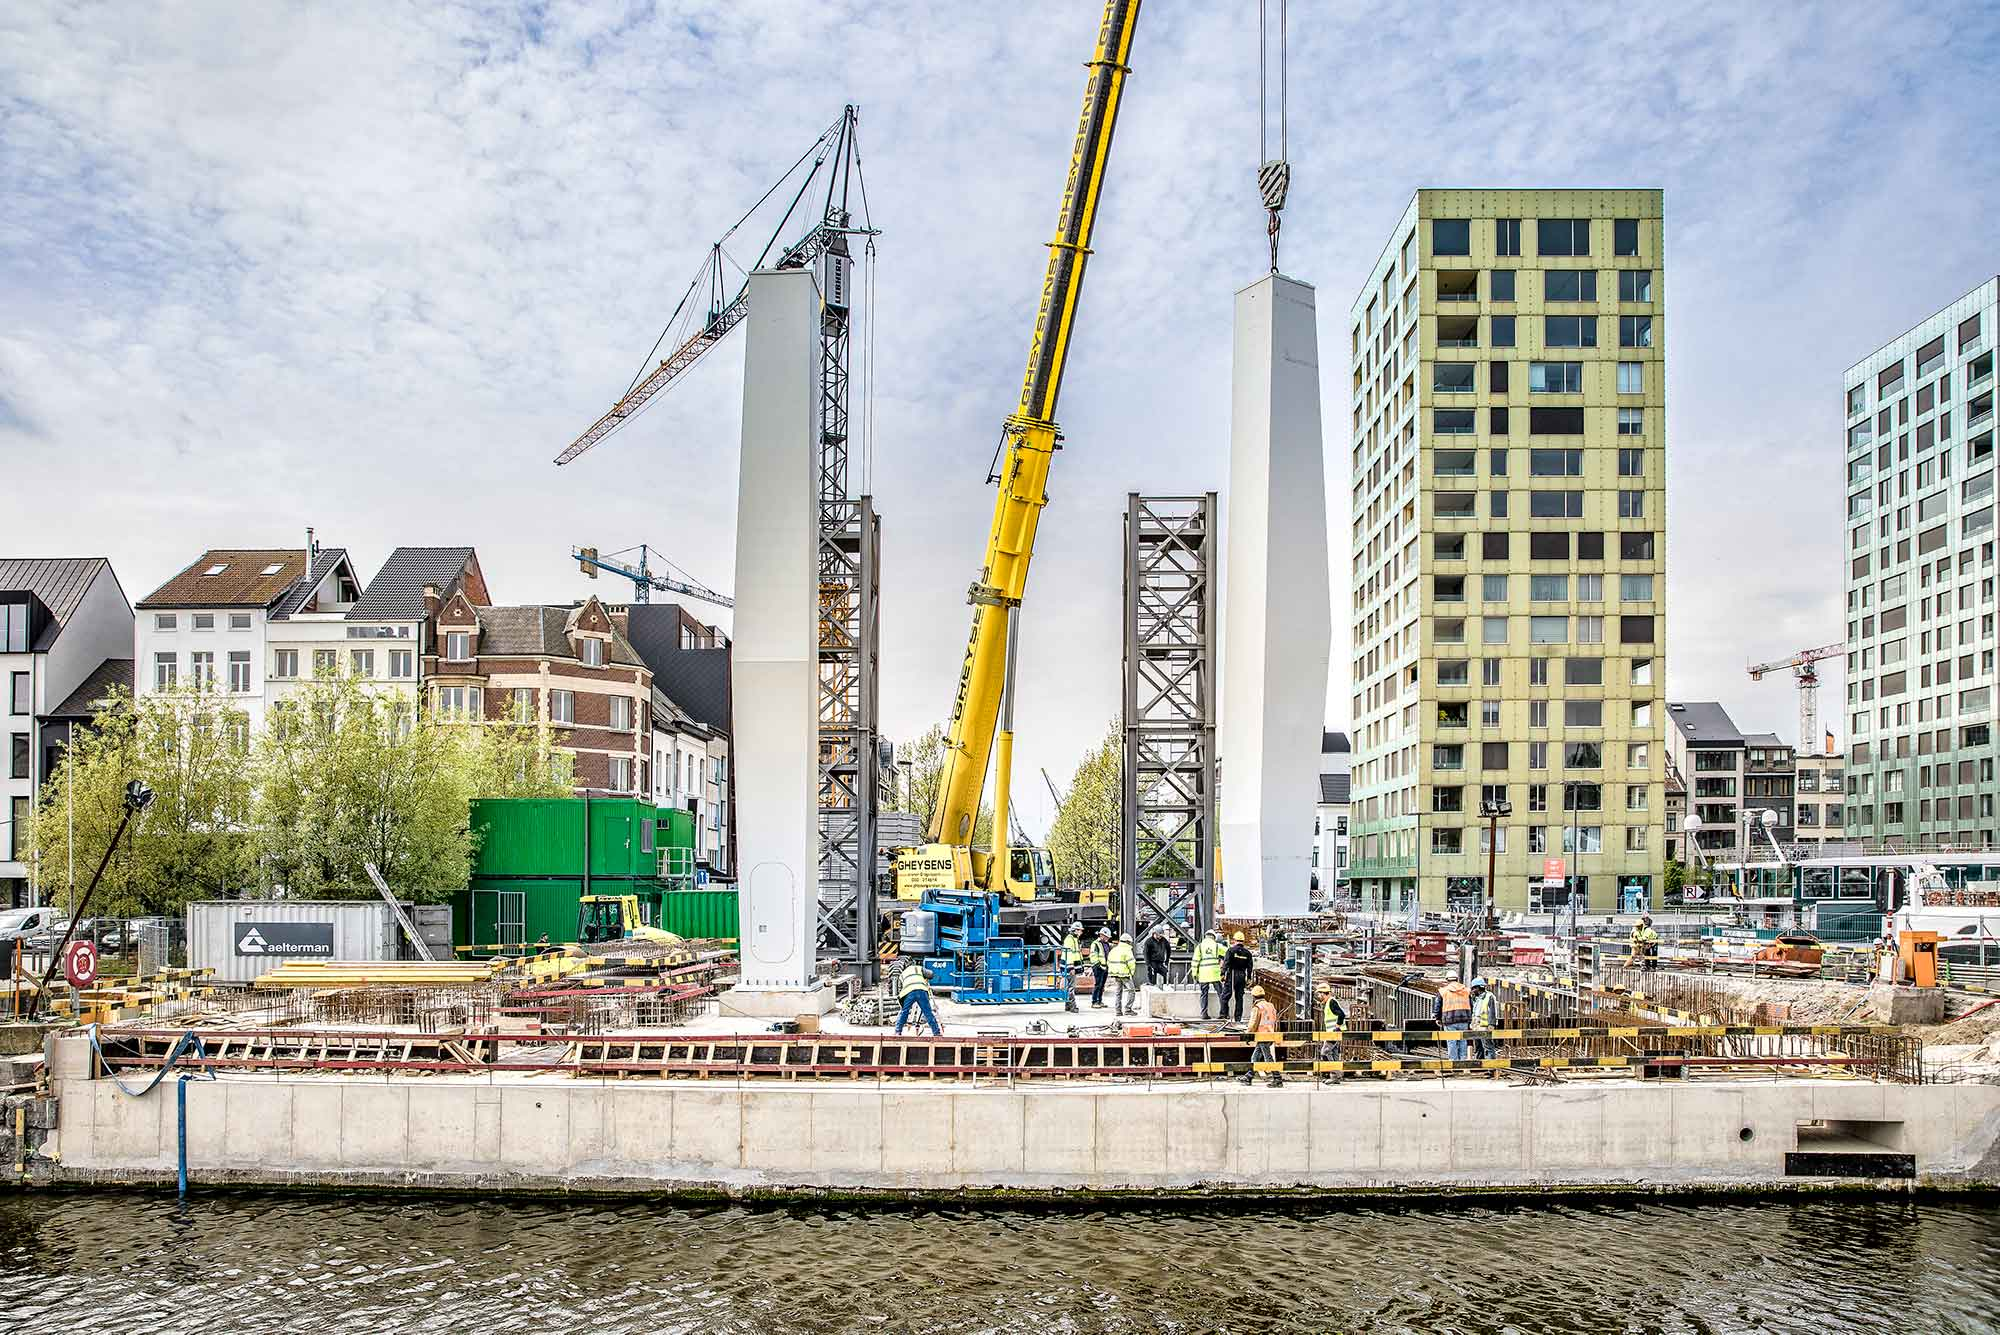 Construction_photography_pascal_vandecasteele52.jpg